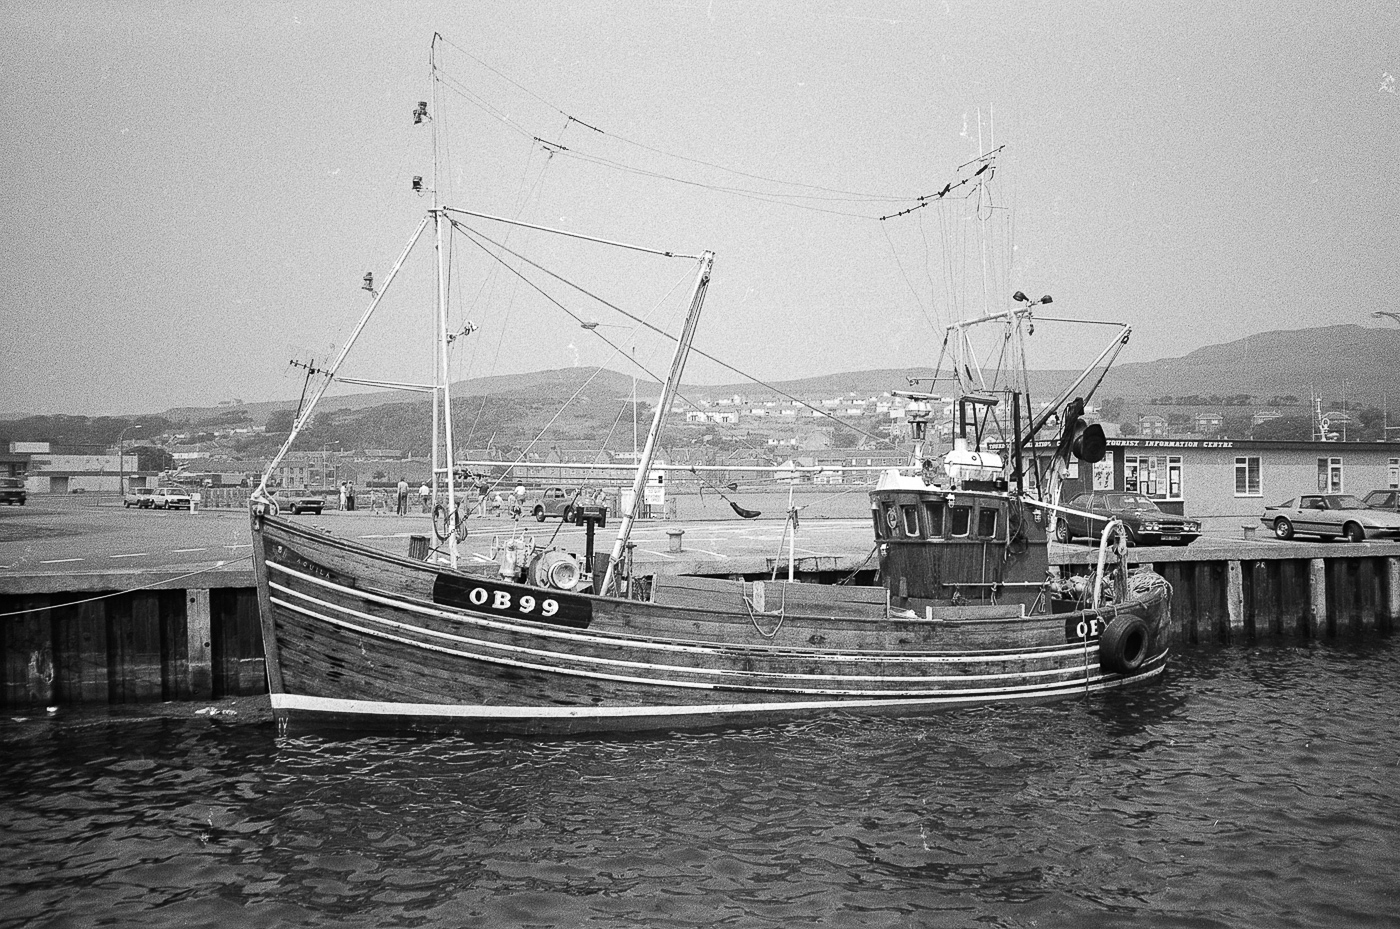 Dual purpose ringnetter and trawler 'Aquila', OB99, in harbour, Campbeltown, 1983. 'Acquila', OB99, was built in Girvan in 1972. She had a varnished hull, light blue steelwork, and a varnished wheelhuse. She was later rigged out for pair trawling and in February 1986, she was sold to Pittenweem.